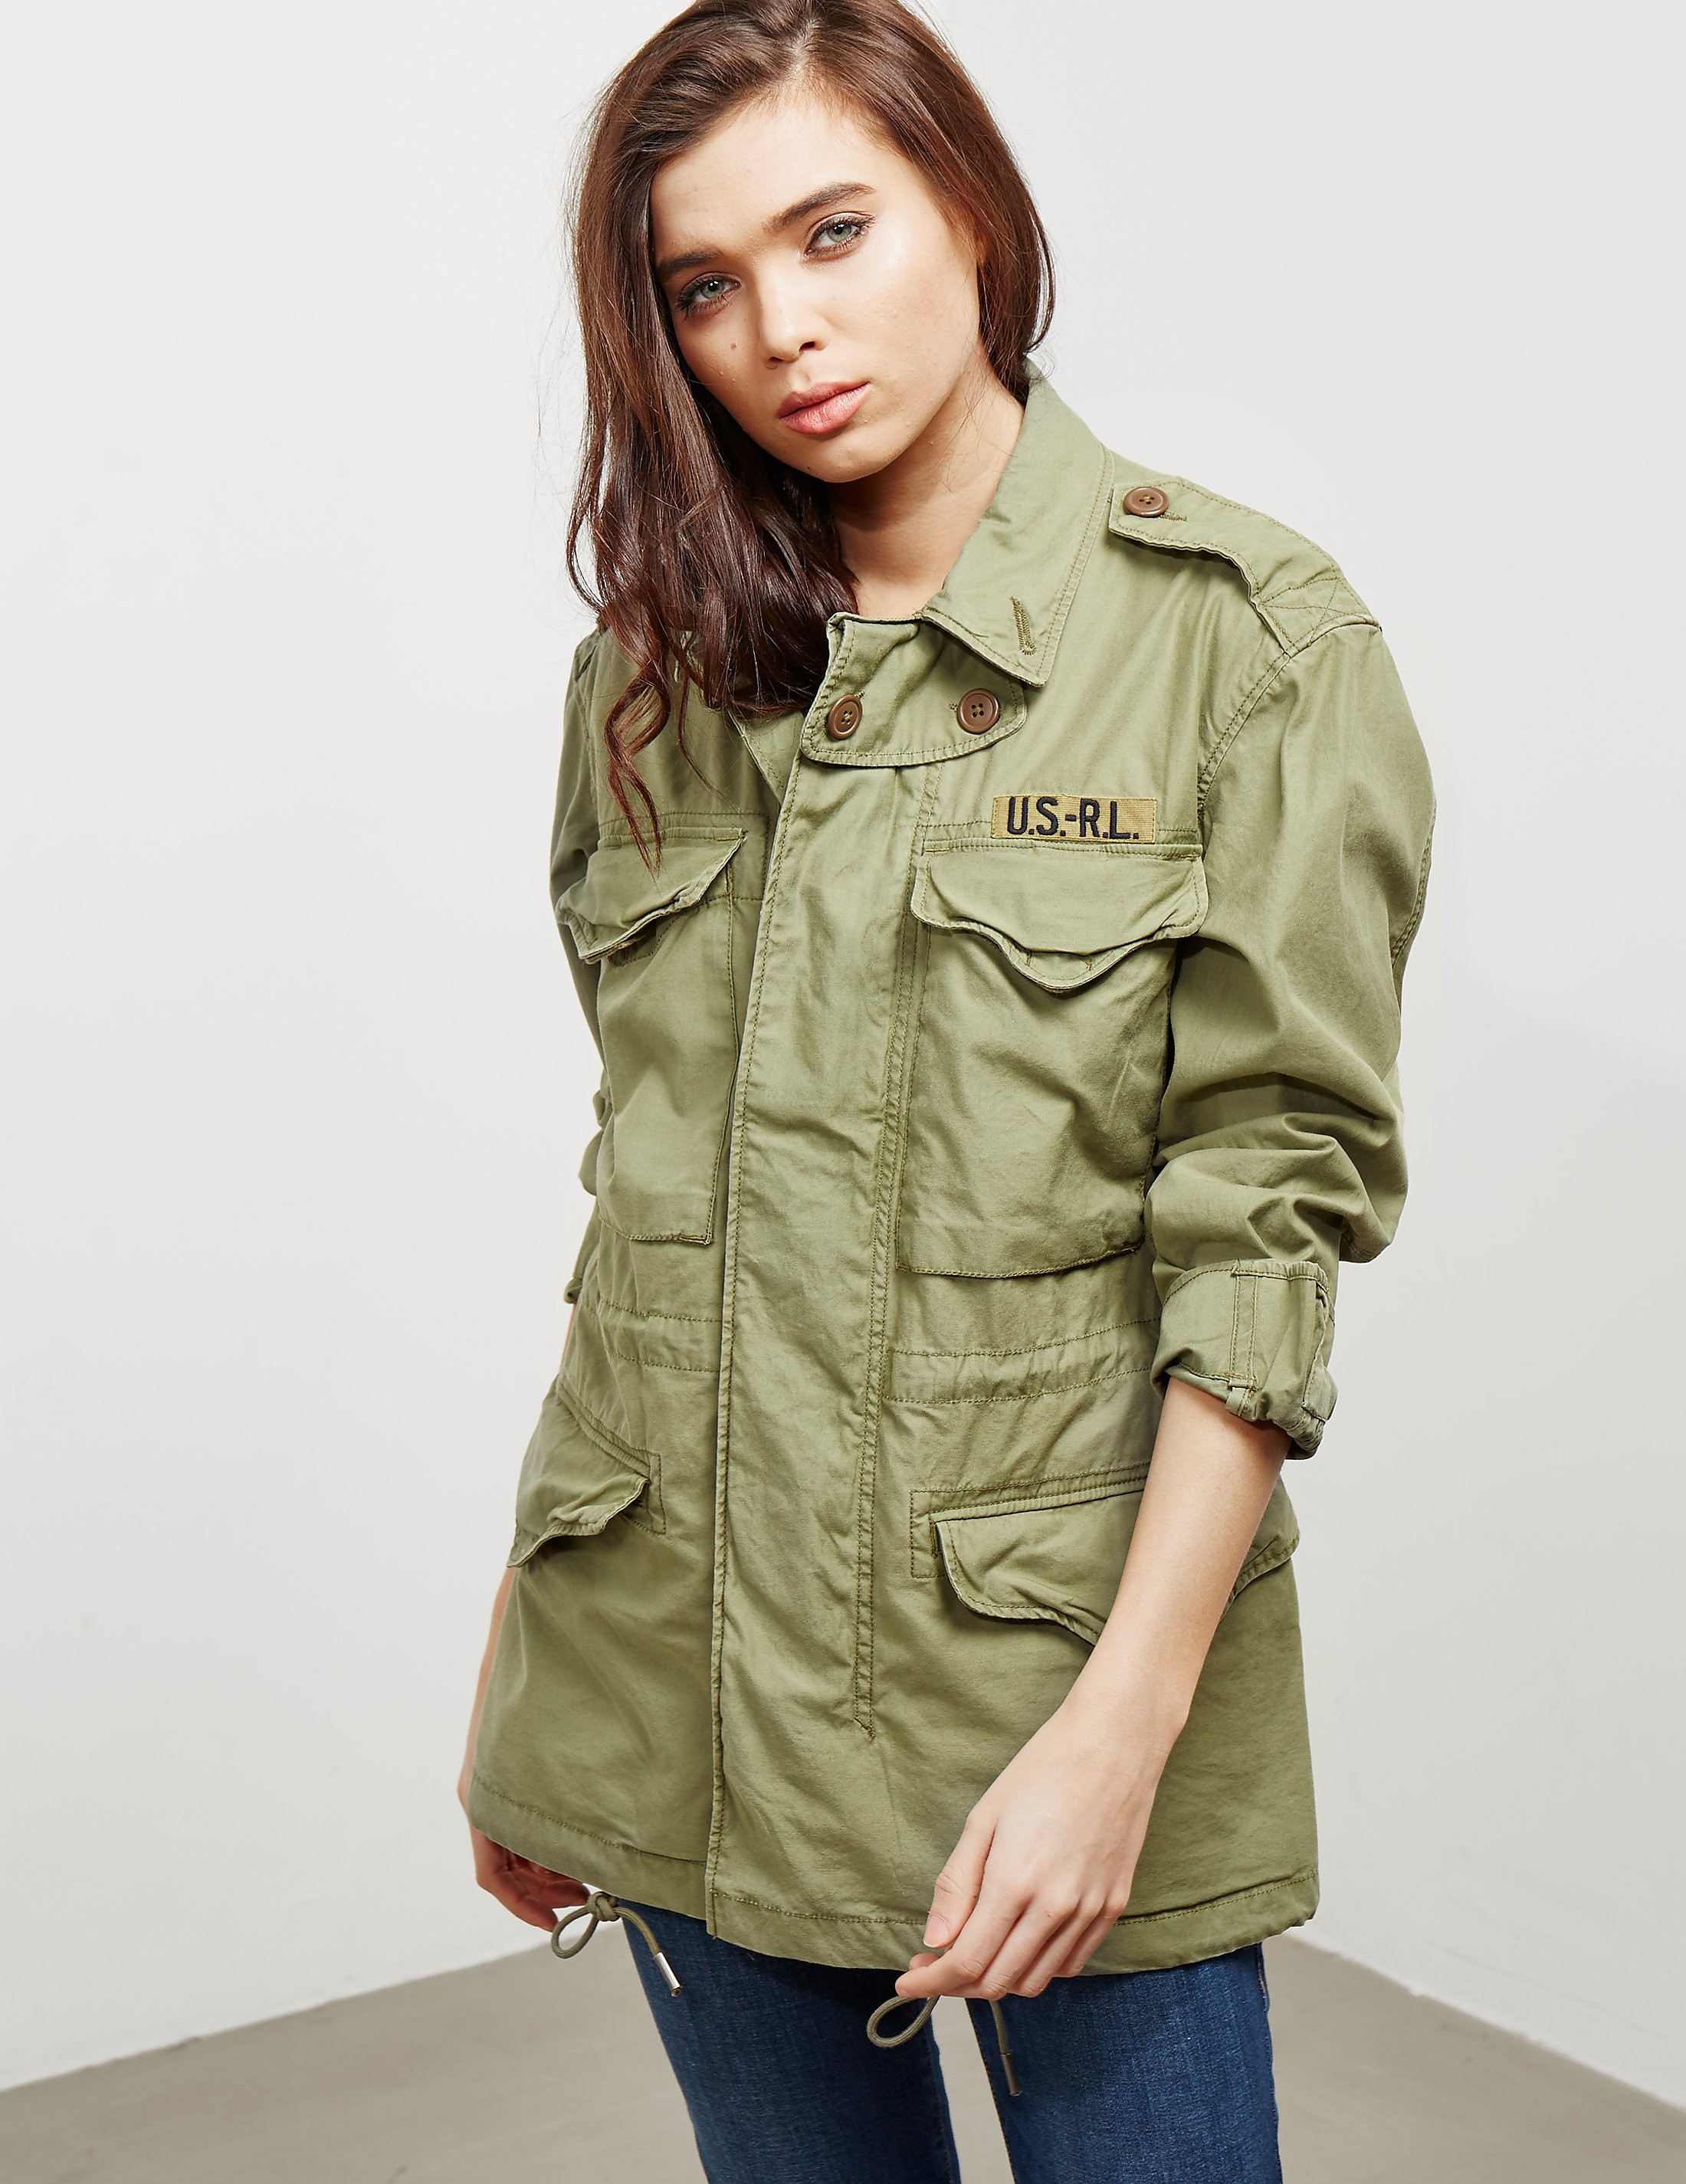 Polo Ralph Lauren Combat Jacket